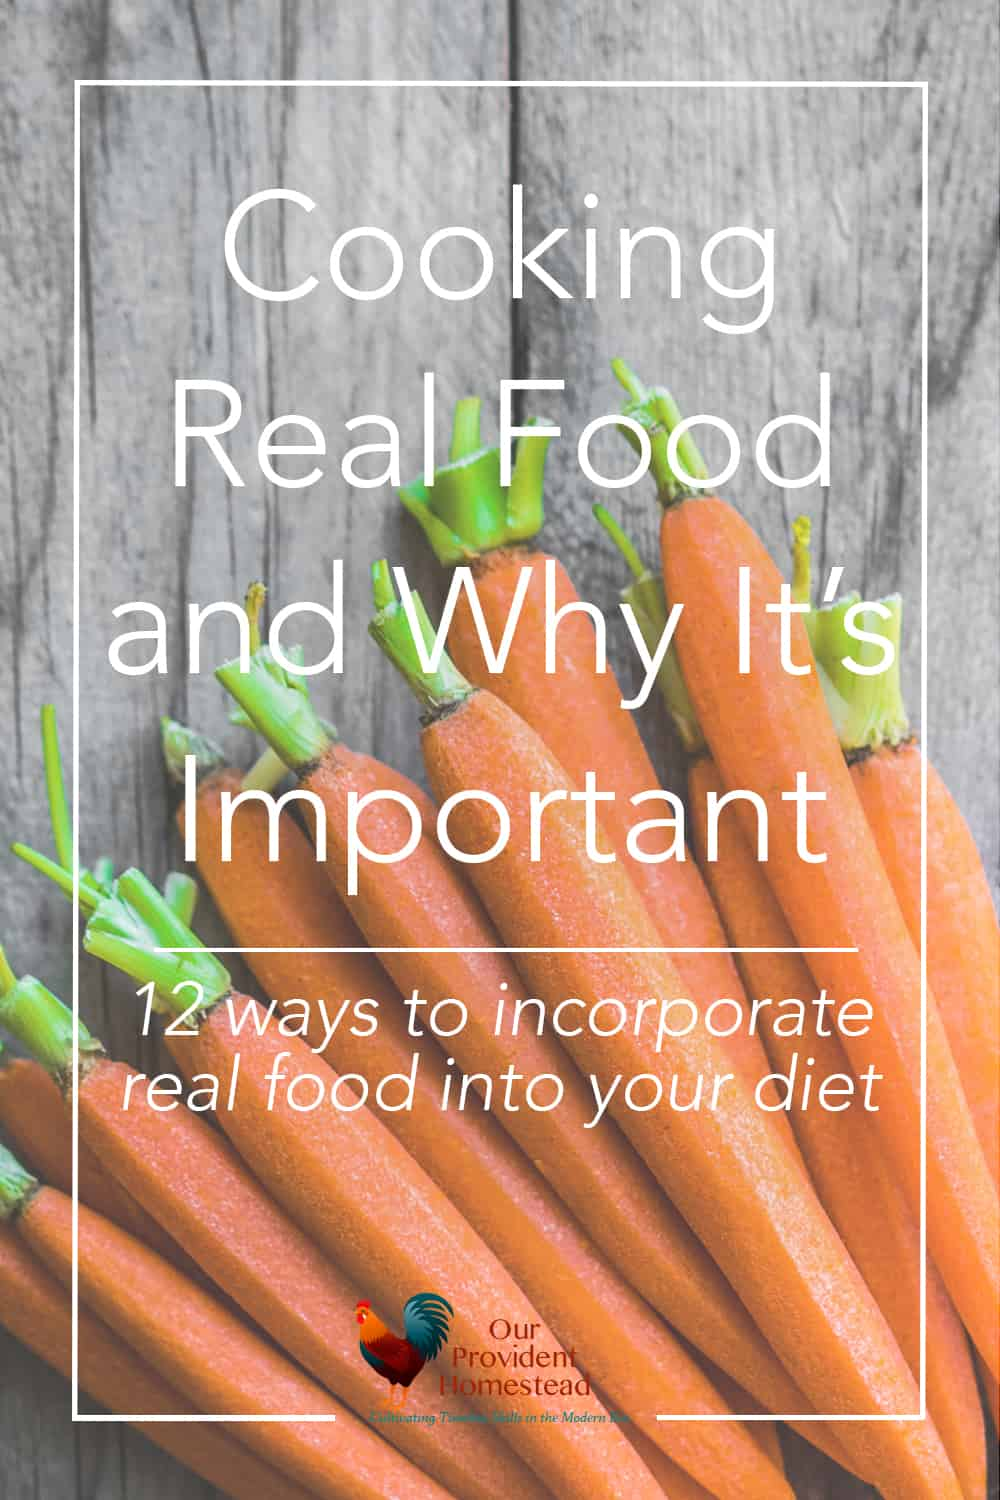 Do you want to learn how to cook real food for your family? We discuss real food, why it's important and 12 steps to incorporating it into your diet. #health #realfood #cookingrealfood #realfoodtips